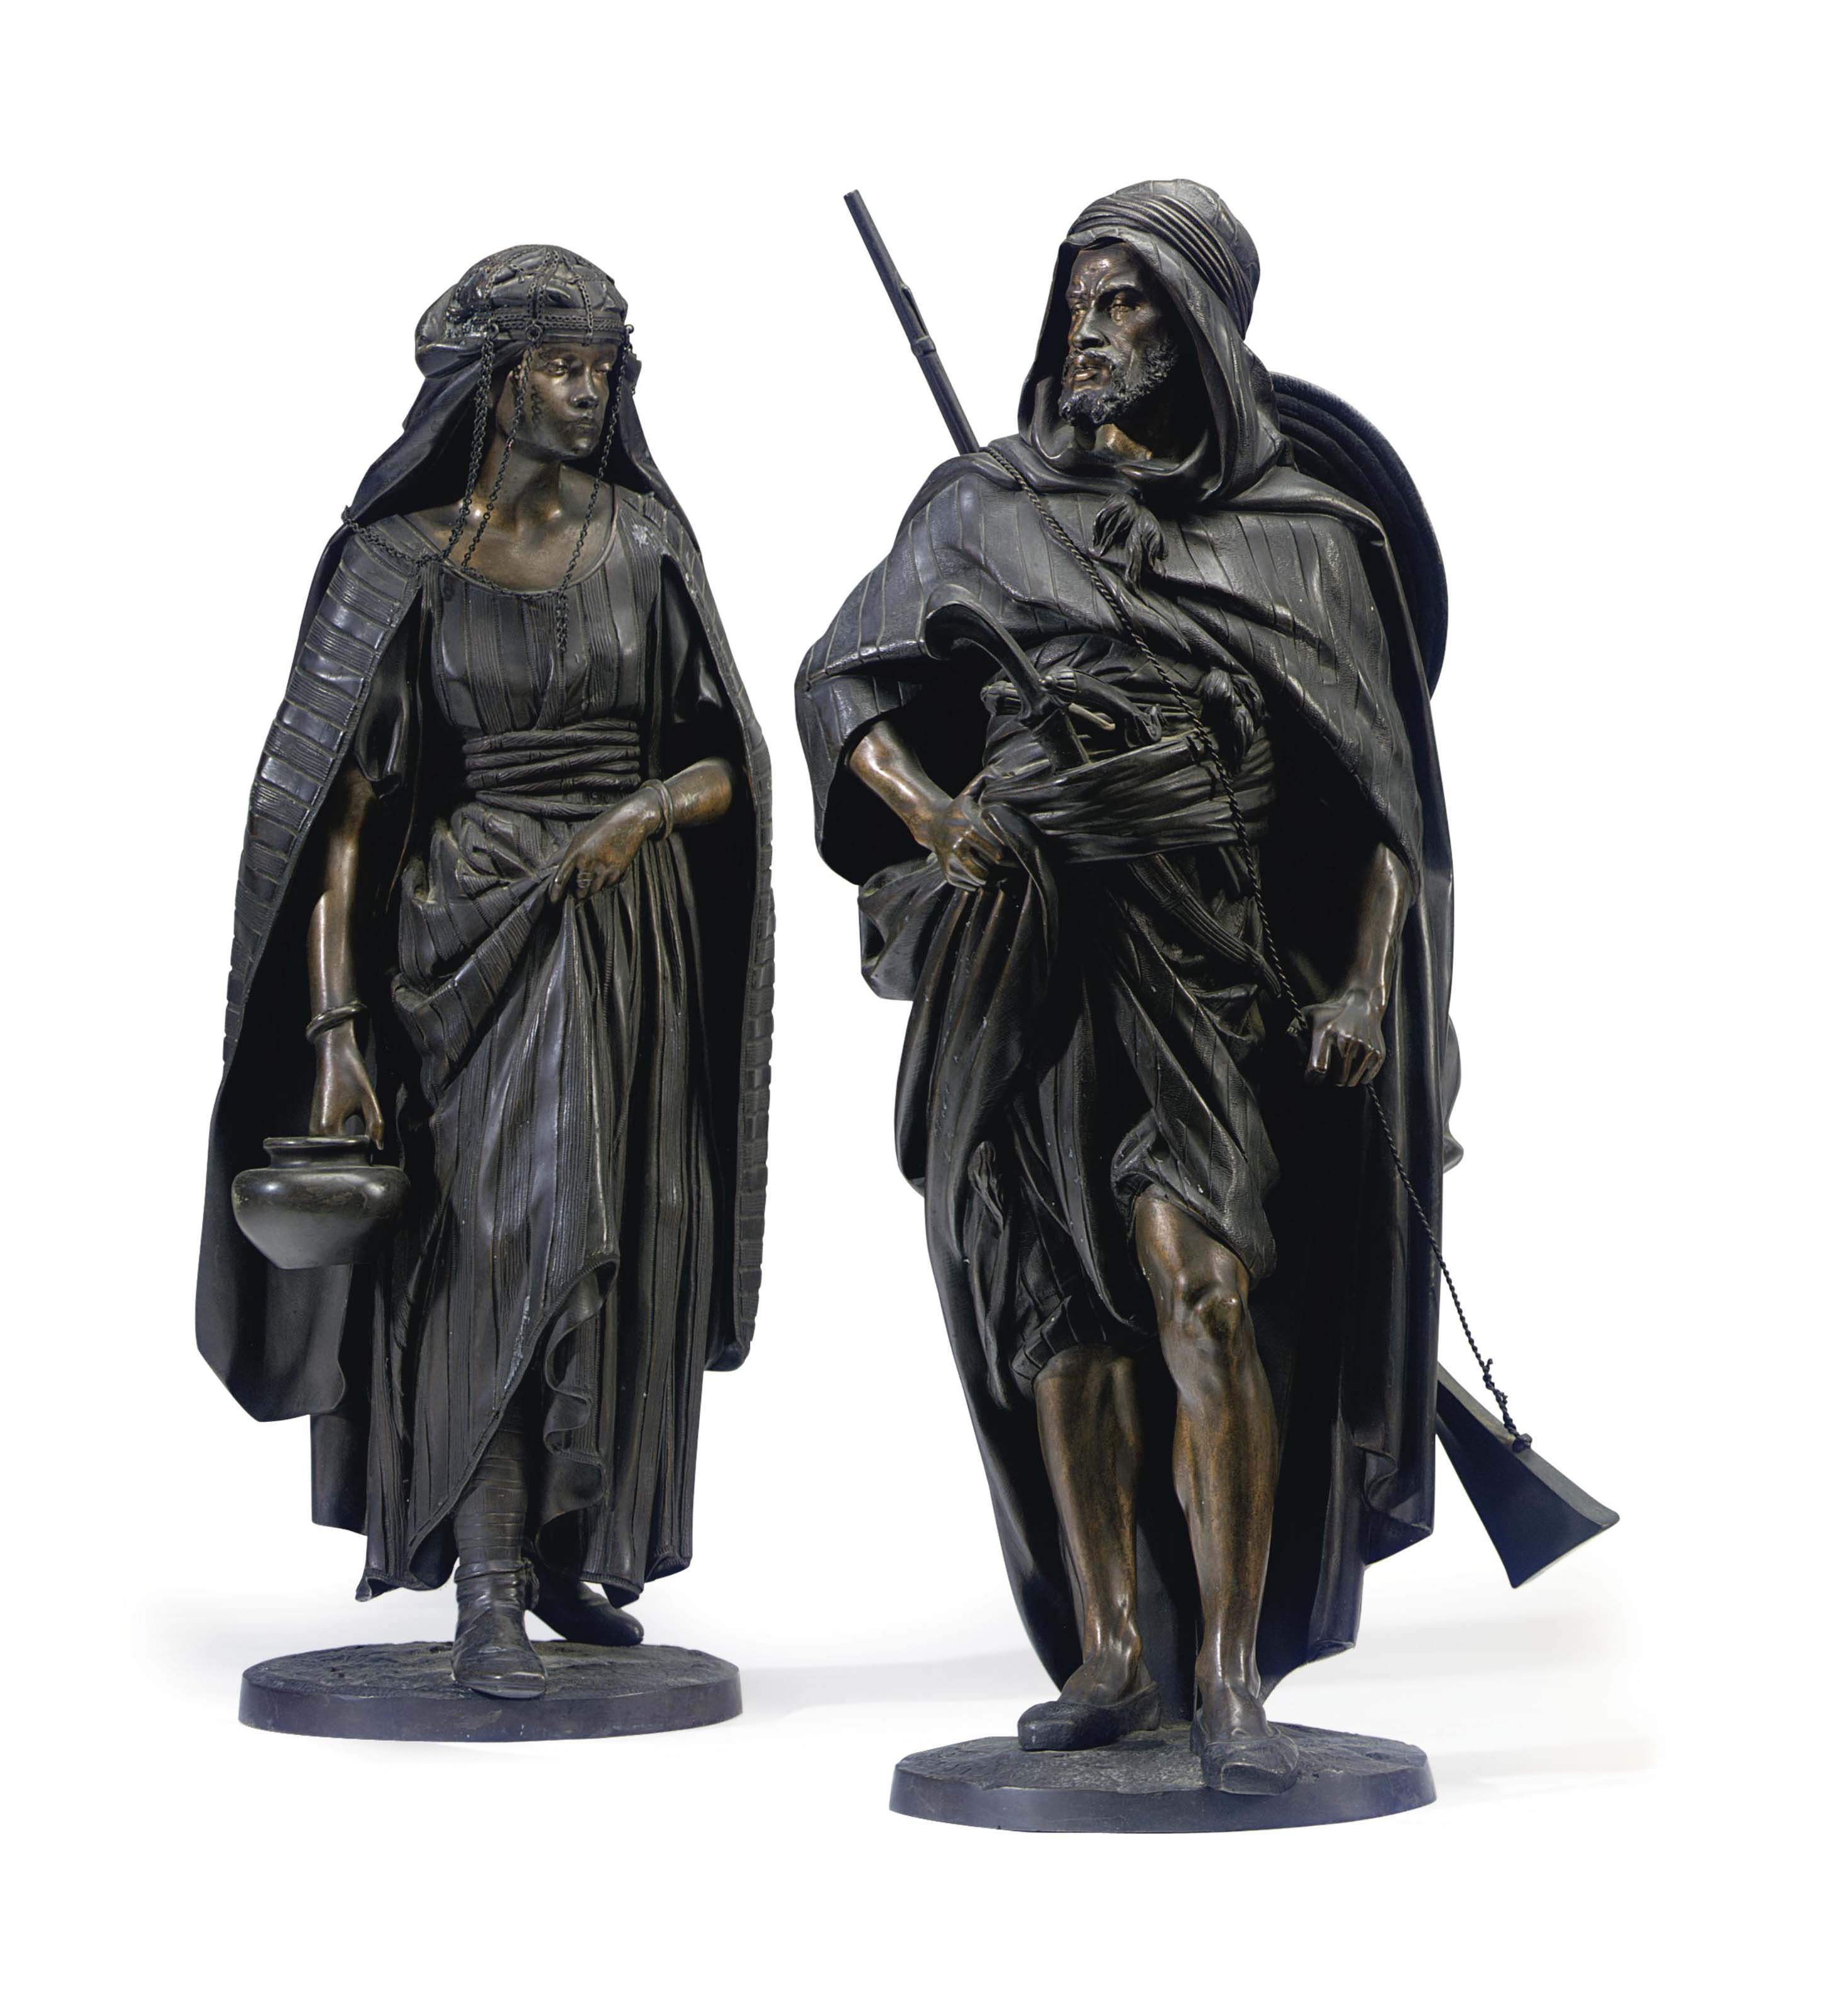 A PAIR OF FRENCH PATINATED BRONZE FIGURES ENTITLED 'LA PORTEUSE' AND 'LE GUERRIER ARAB'